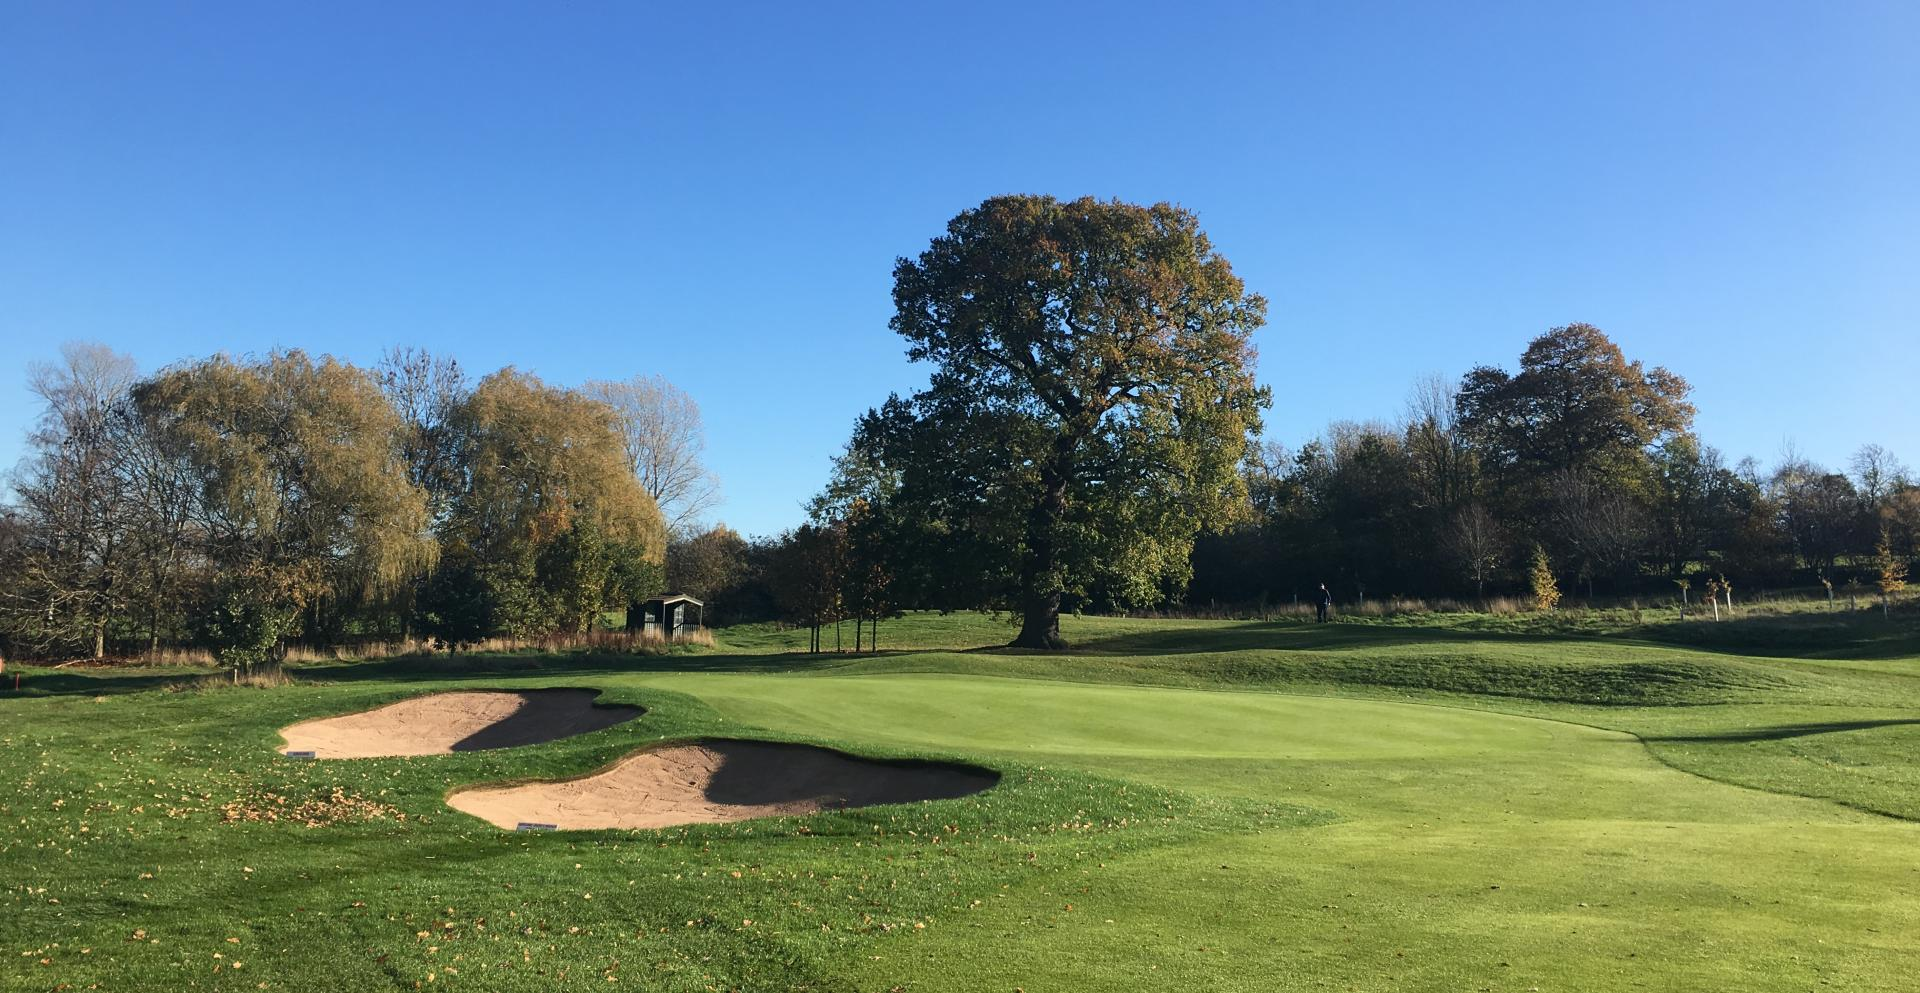 Swan Golf Designs Completes Bunker Renovation Project at Wellingborough Golf Club